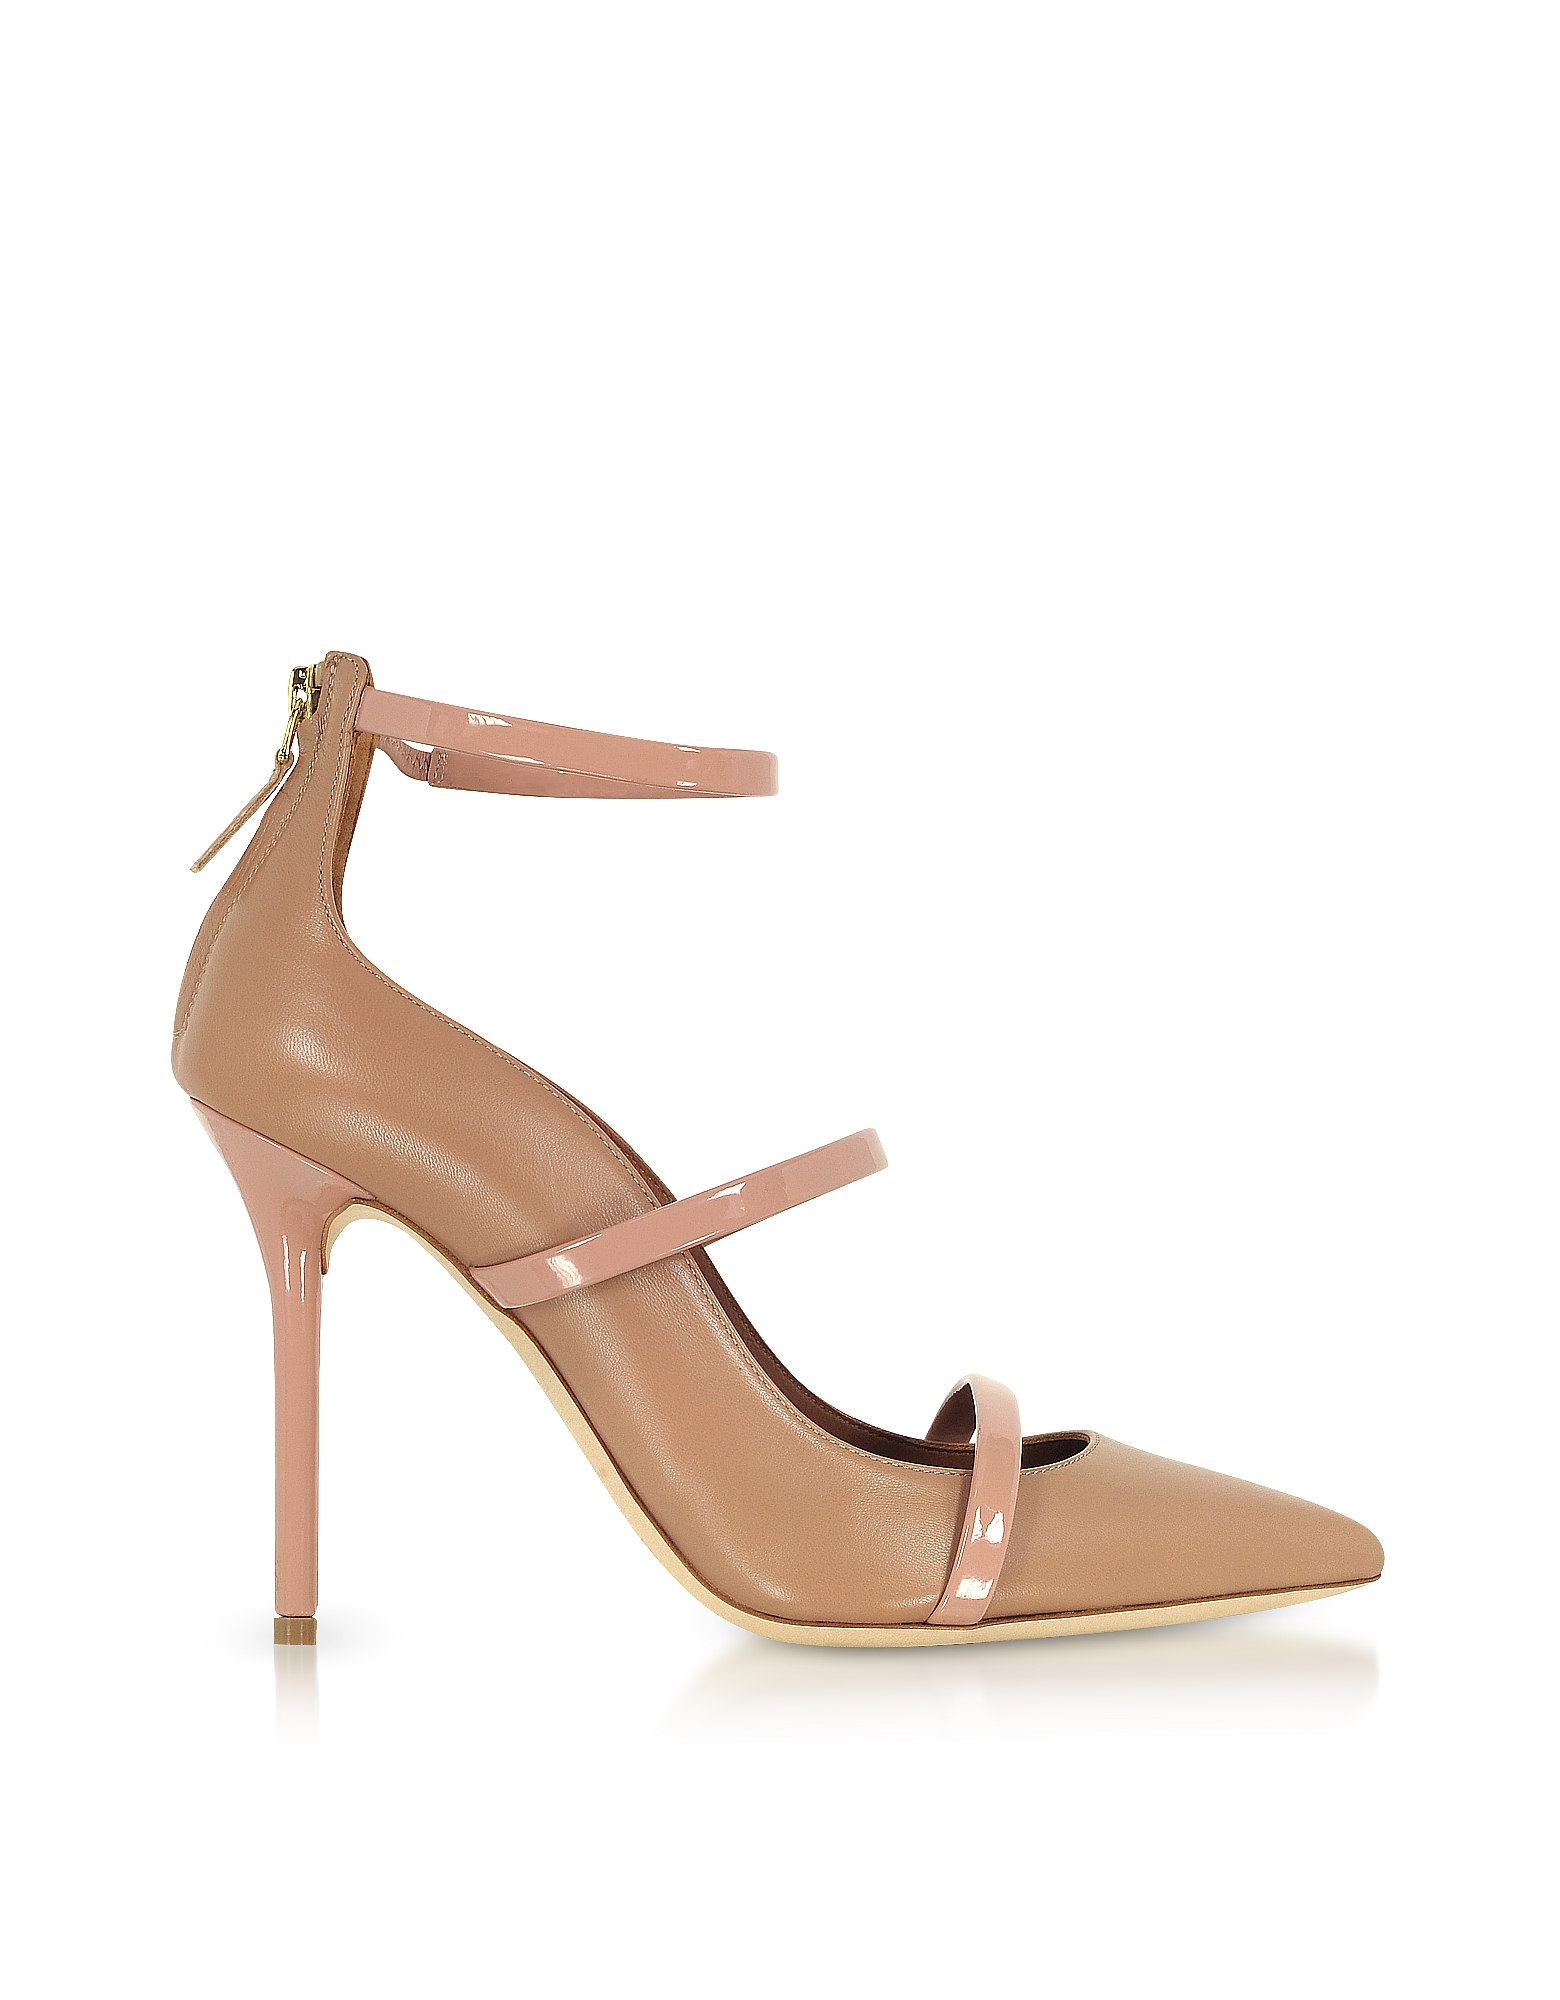 Malone Souliers by Roy Luwolt Shoes, Robyn Nude and BLush Nappa Leather Pumps